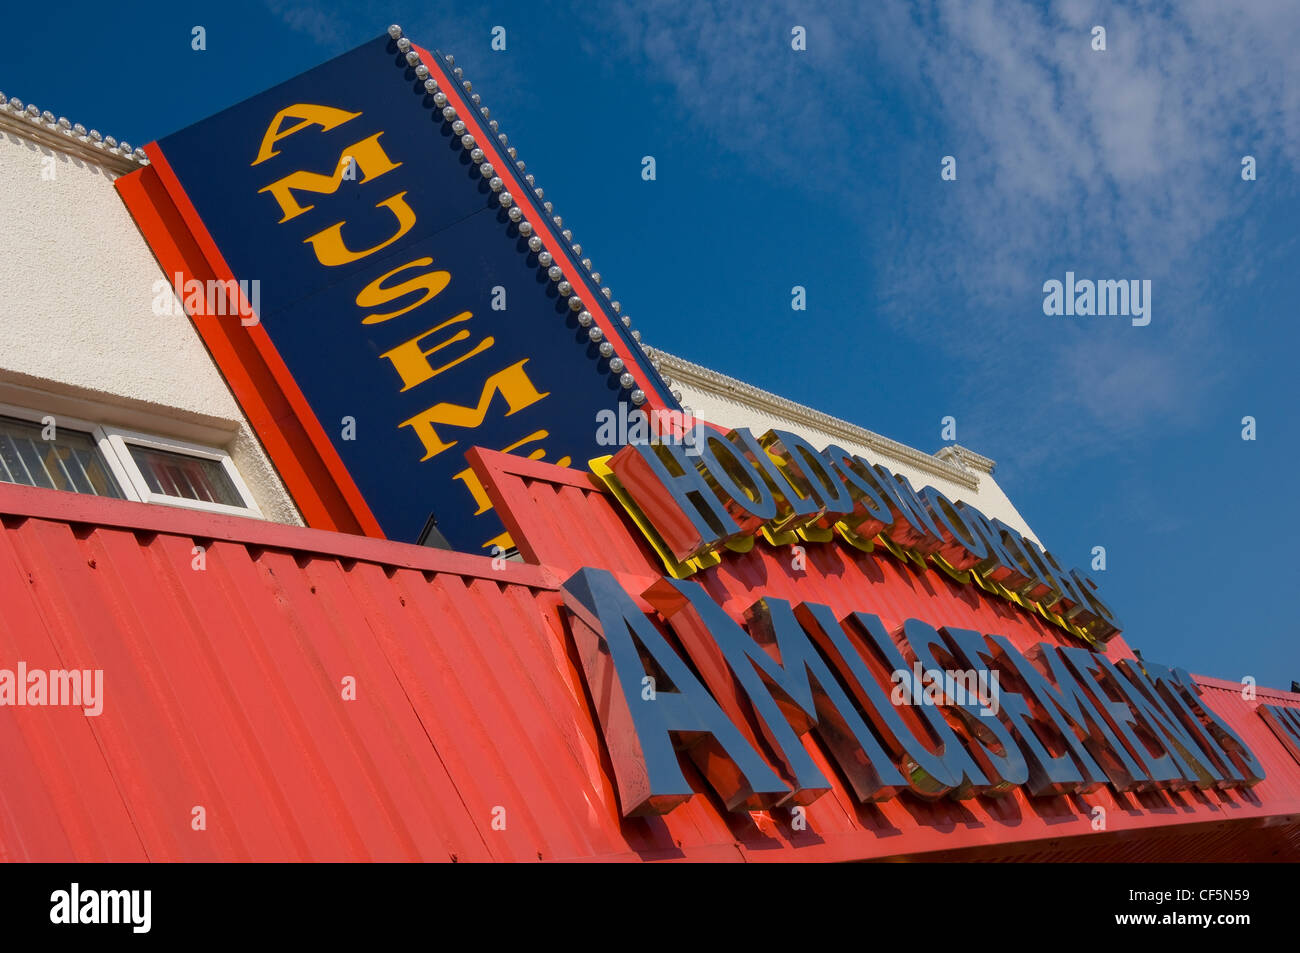 Holdsworths Amusements signs on the seafront at Filey. - Stock Image